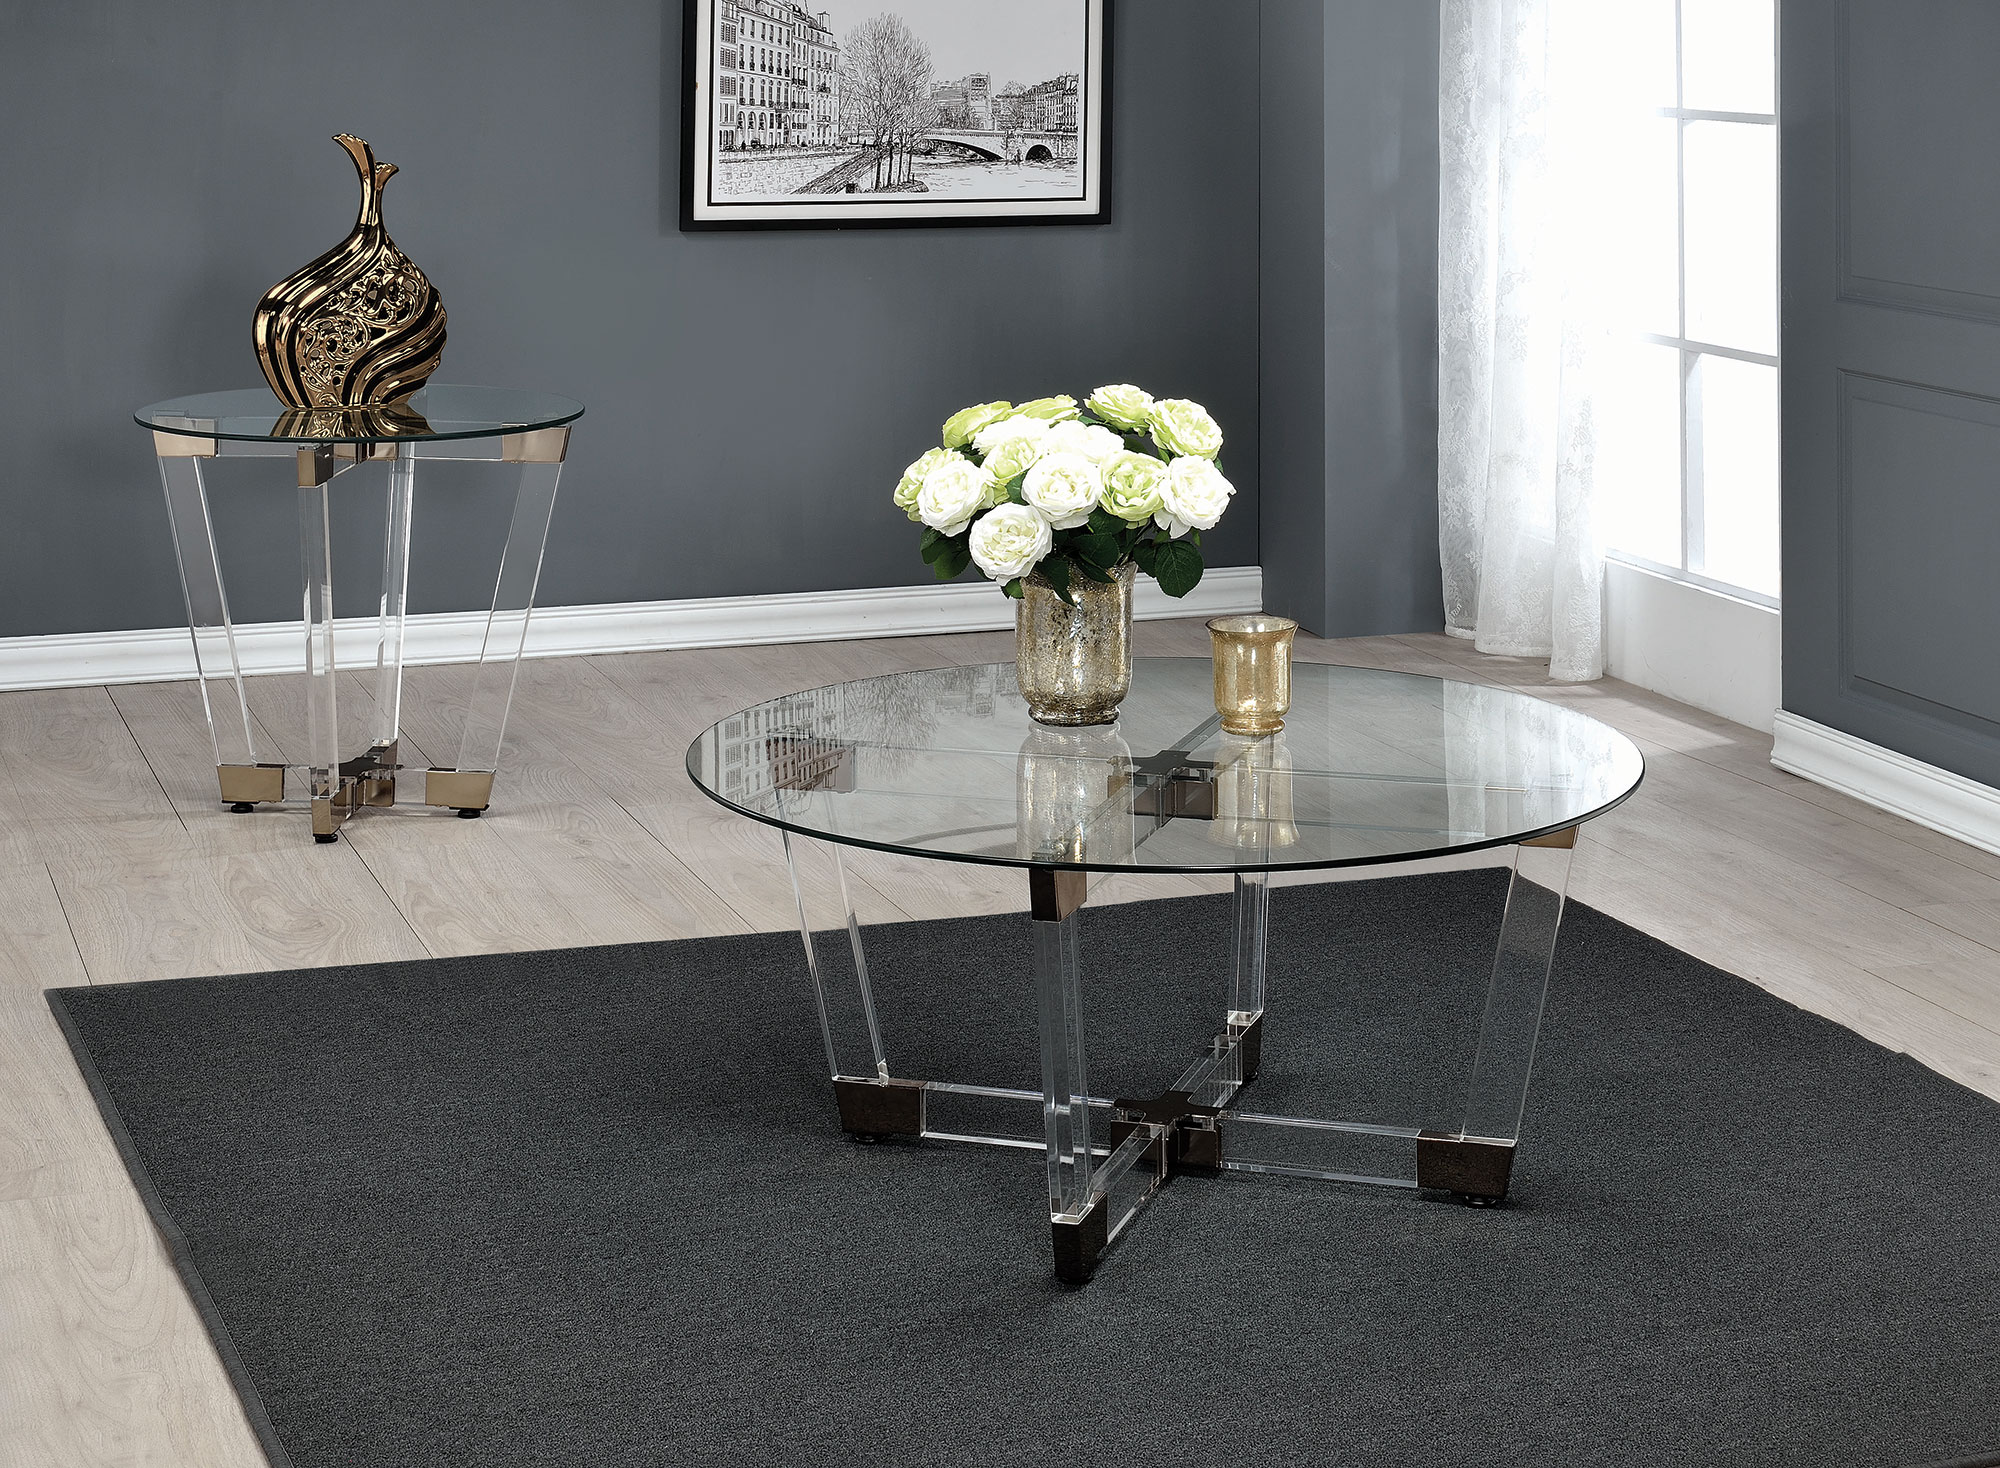 Cleo Acrylic Round Glass Coffee Table Collection Las Vegas Furniture Store Modern Home